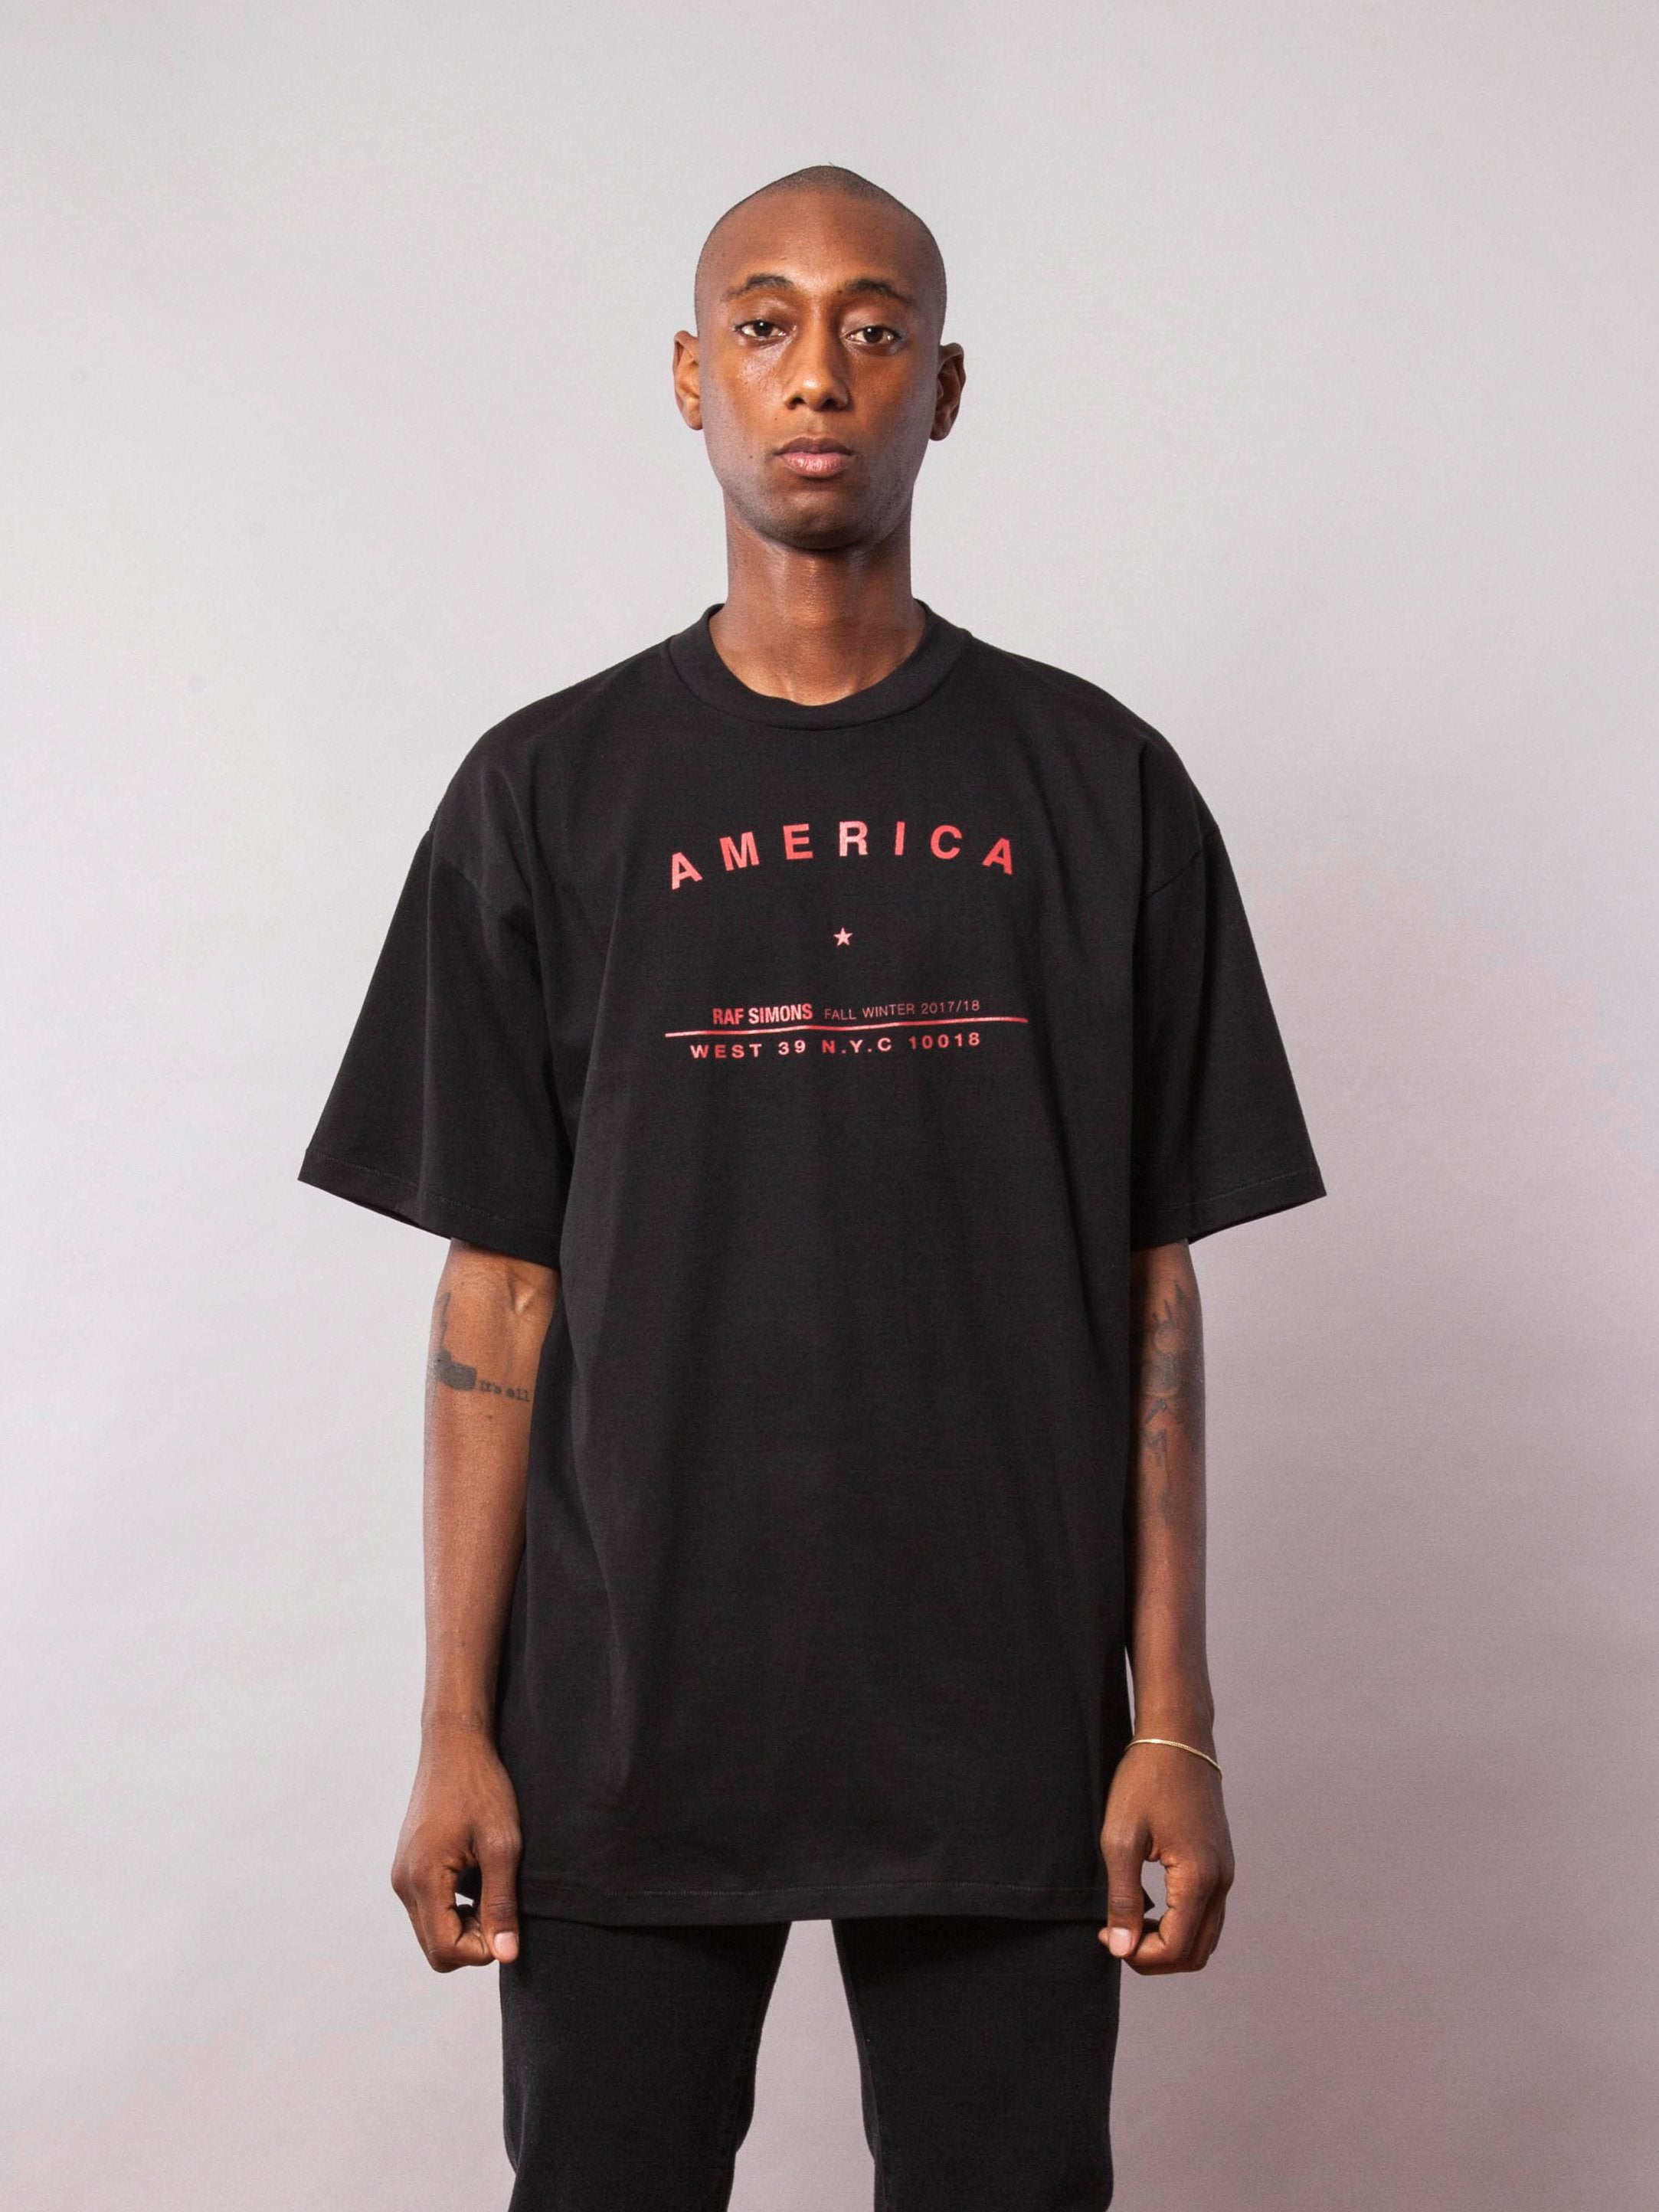 America T-Shirt (Big Fit)